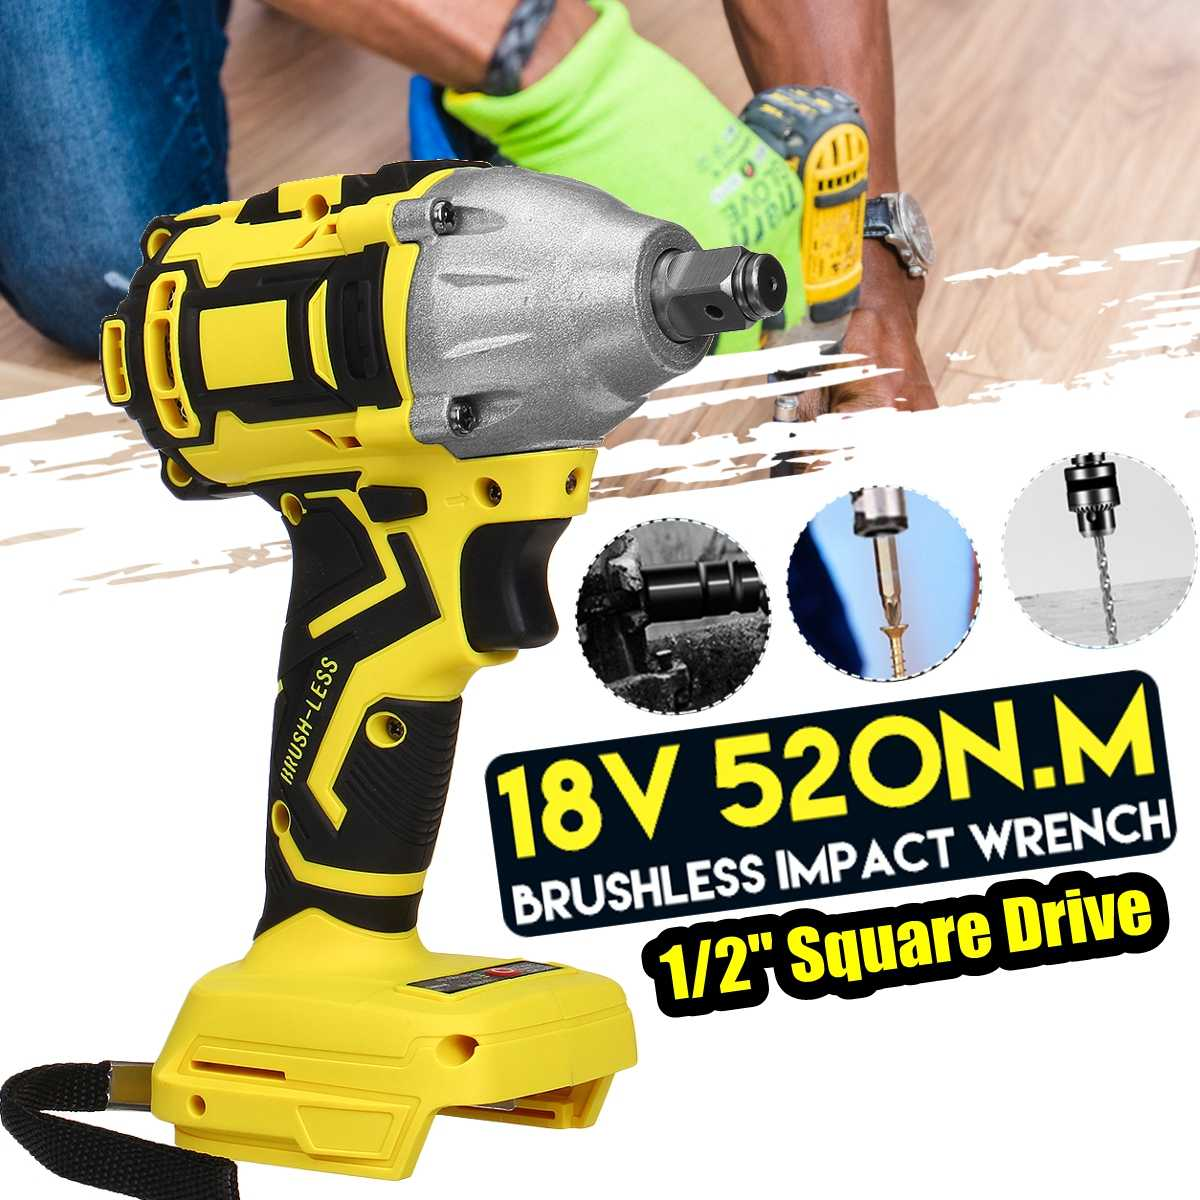 18V 350N.m Brushless Impact Wrench Cordless Electric Wrench Power Tool Torque Rechargeable For Makita Battery DTW285Z